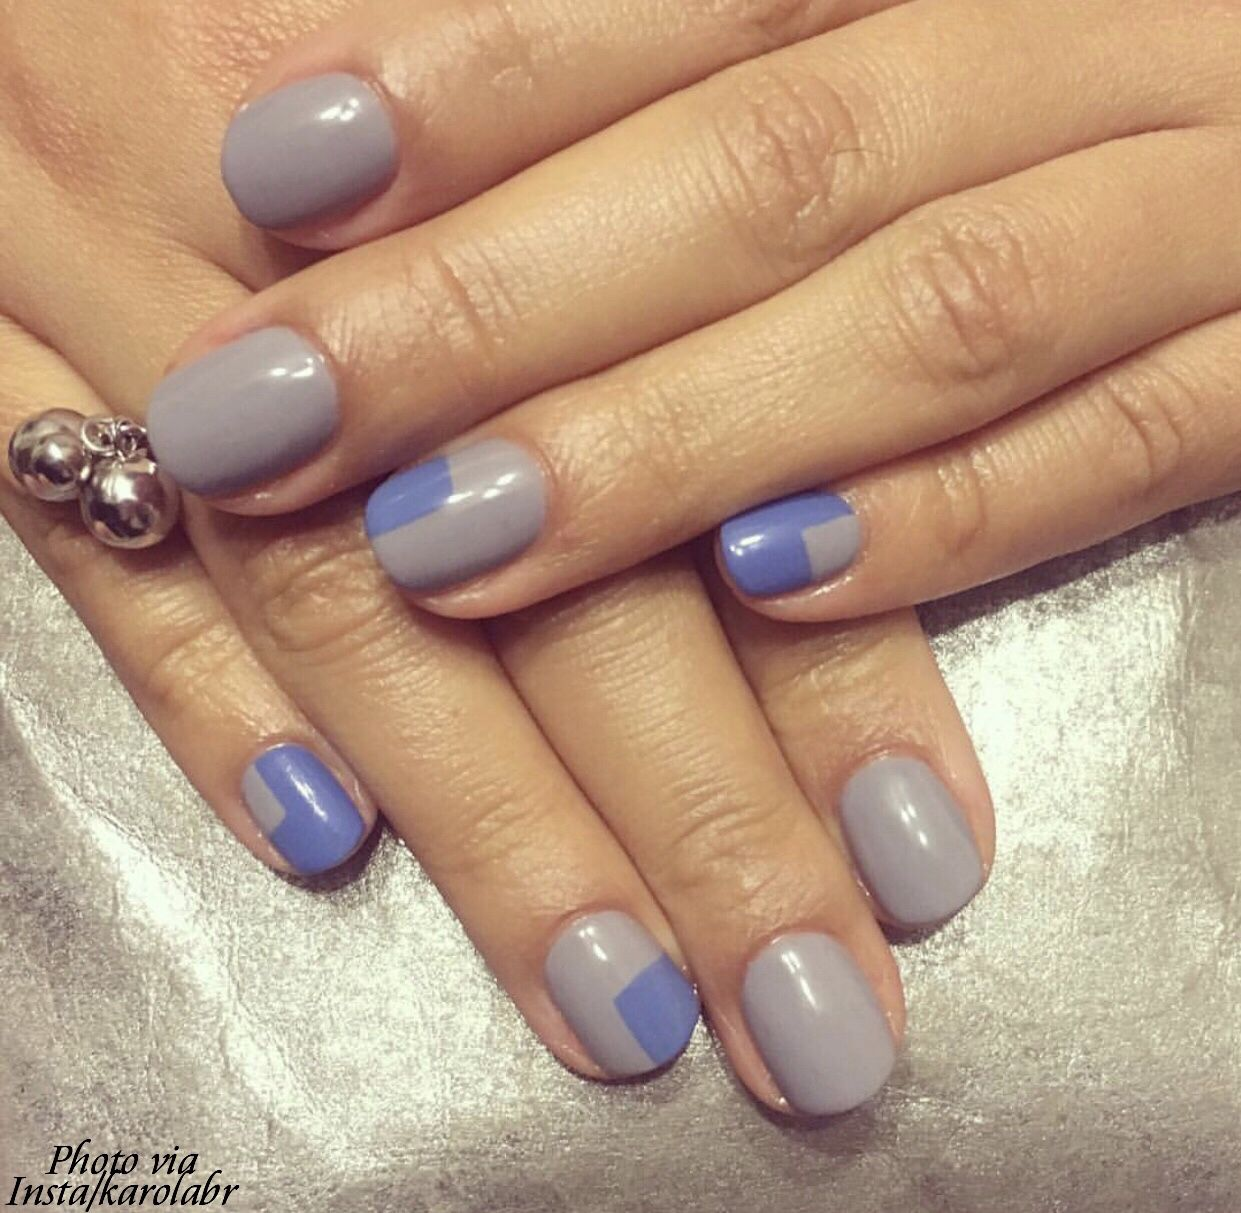 Pin by vinellyy on Paznokcie in 2020 | Nails, Beauty